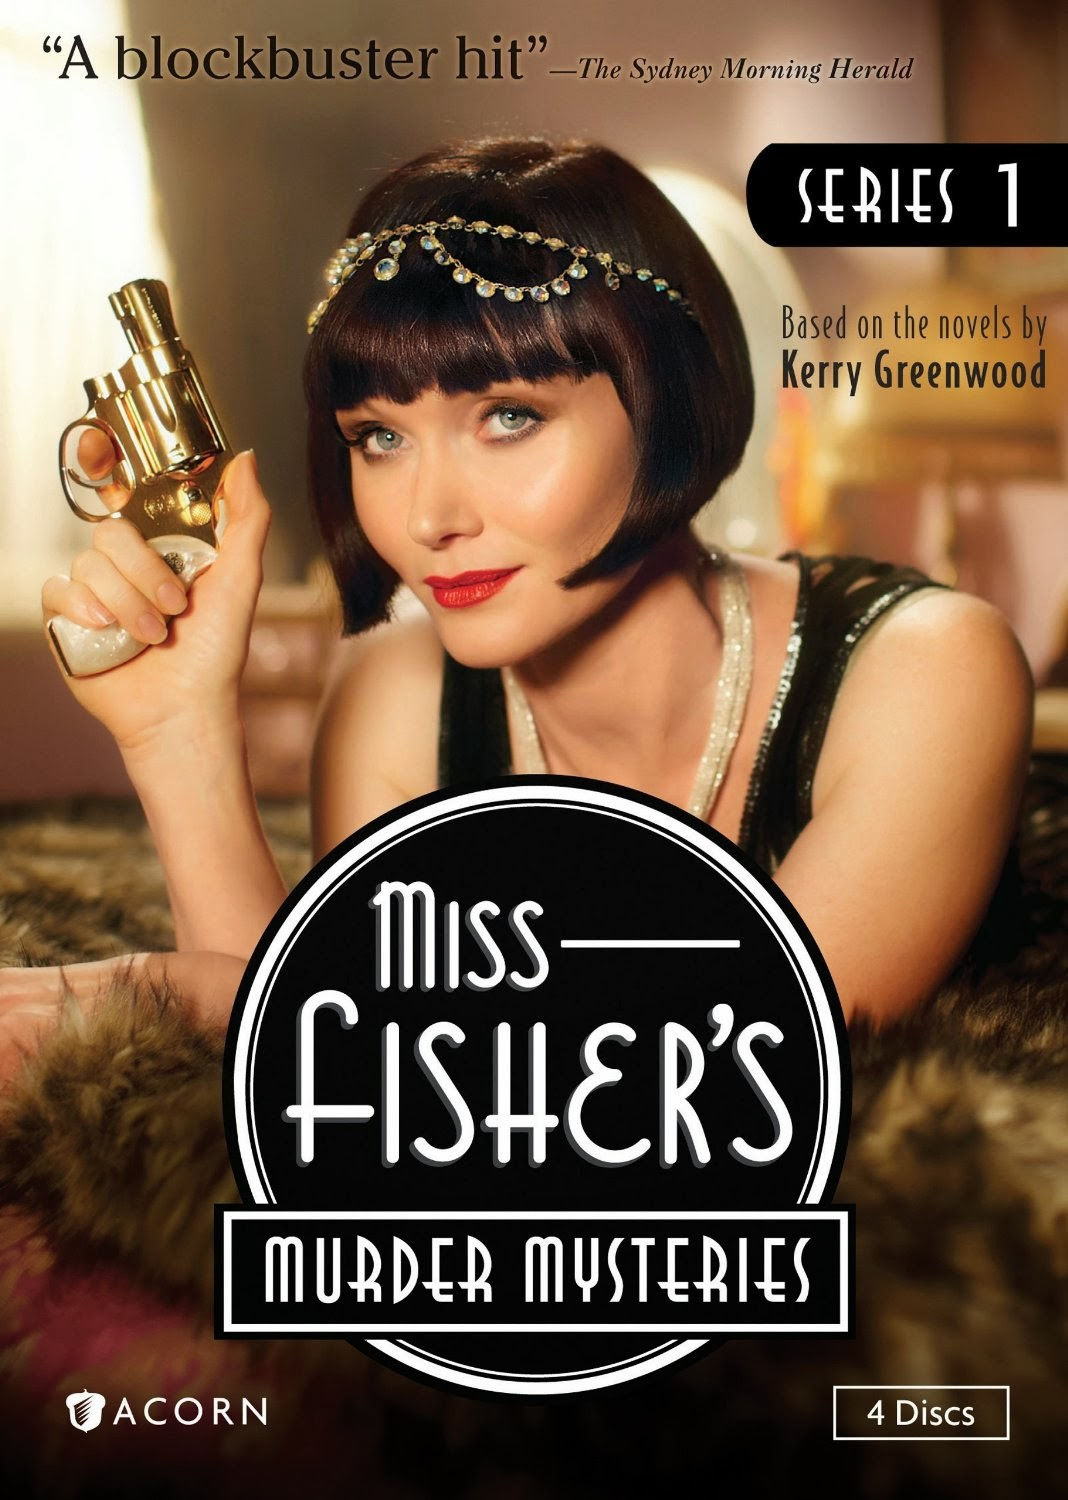 Miss Fishers Murder Mysteries - S01e05